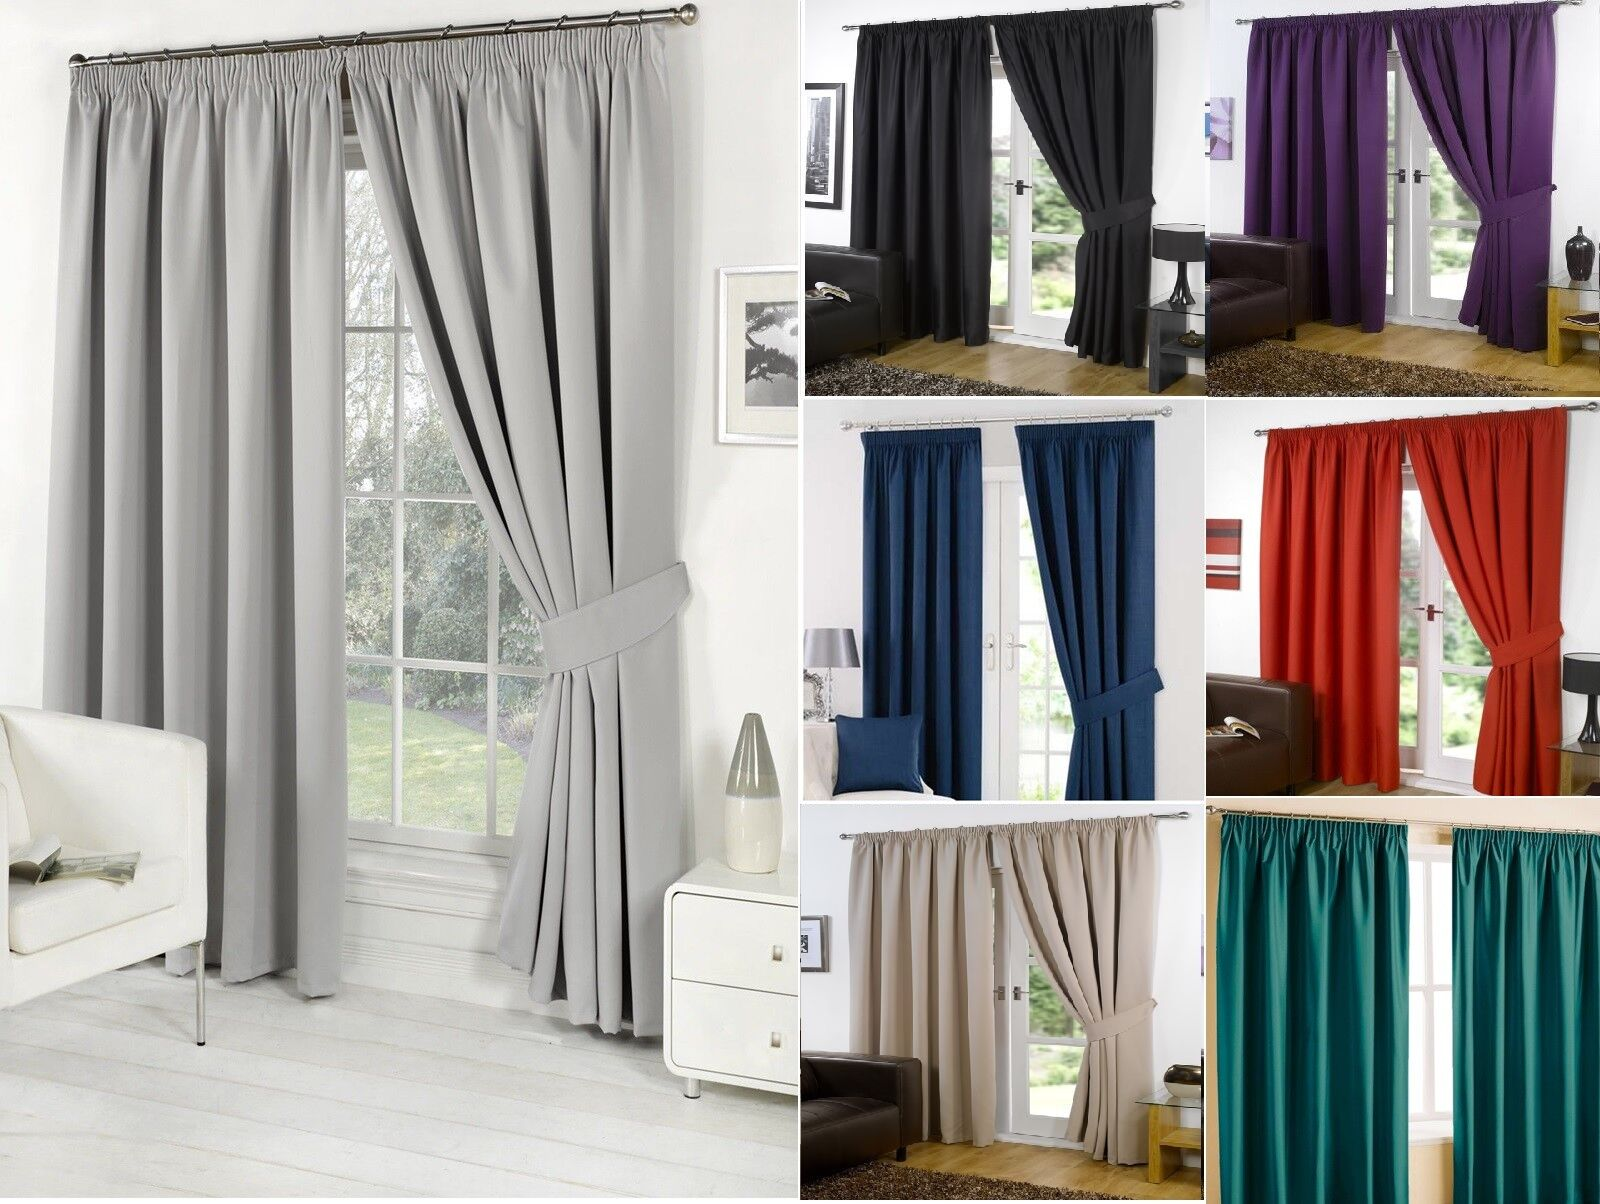 curtains - Thermal Pencil Pleat Blackout Tape Top Pair of Curtains Ready Made Free Tiebacks